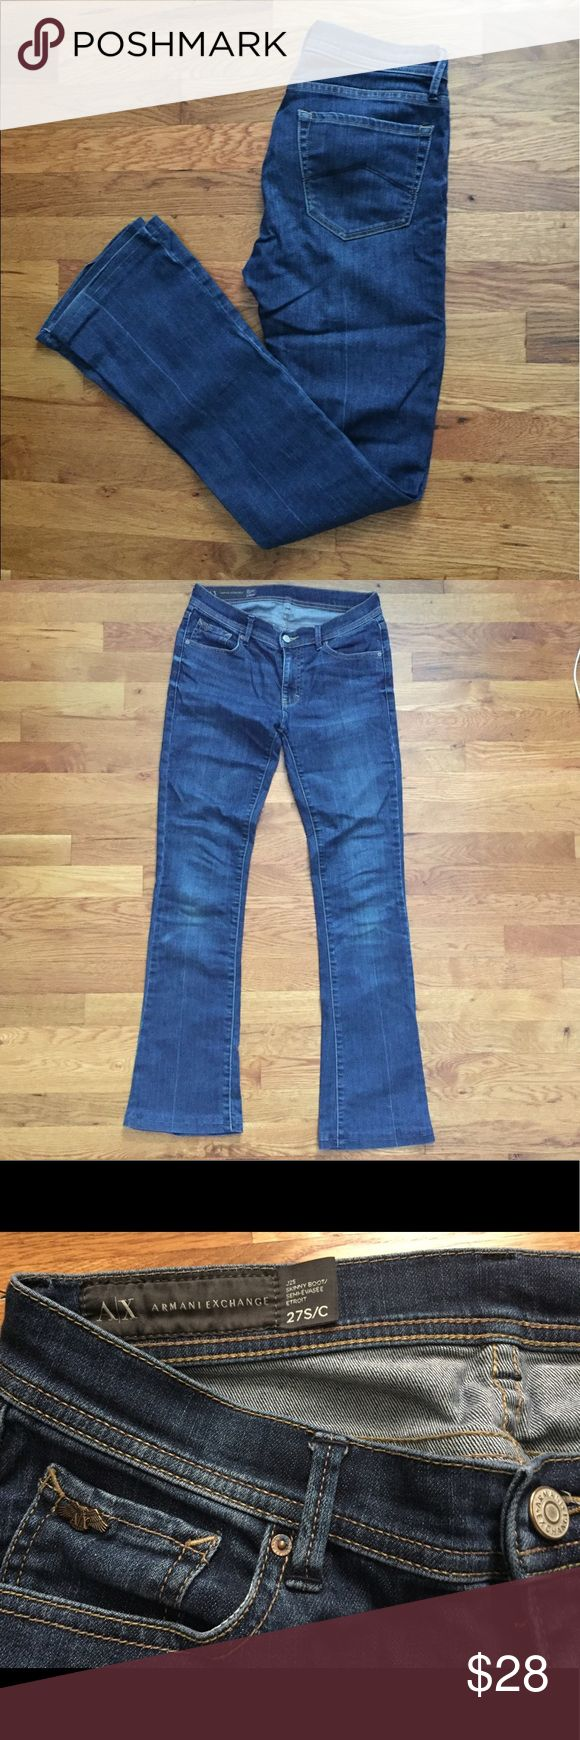 Armani Exchange boot cut jeans Size 27/S Gently loved A/X bootcut jeans in size 27/S. A/X Armani Exchange Jeans Boot Cut